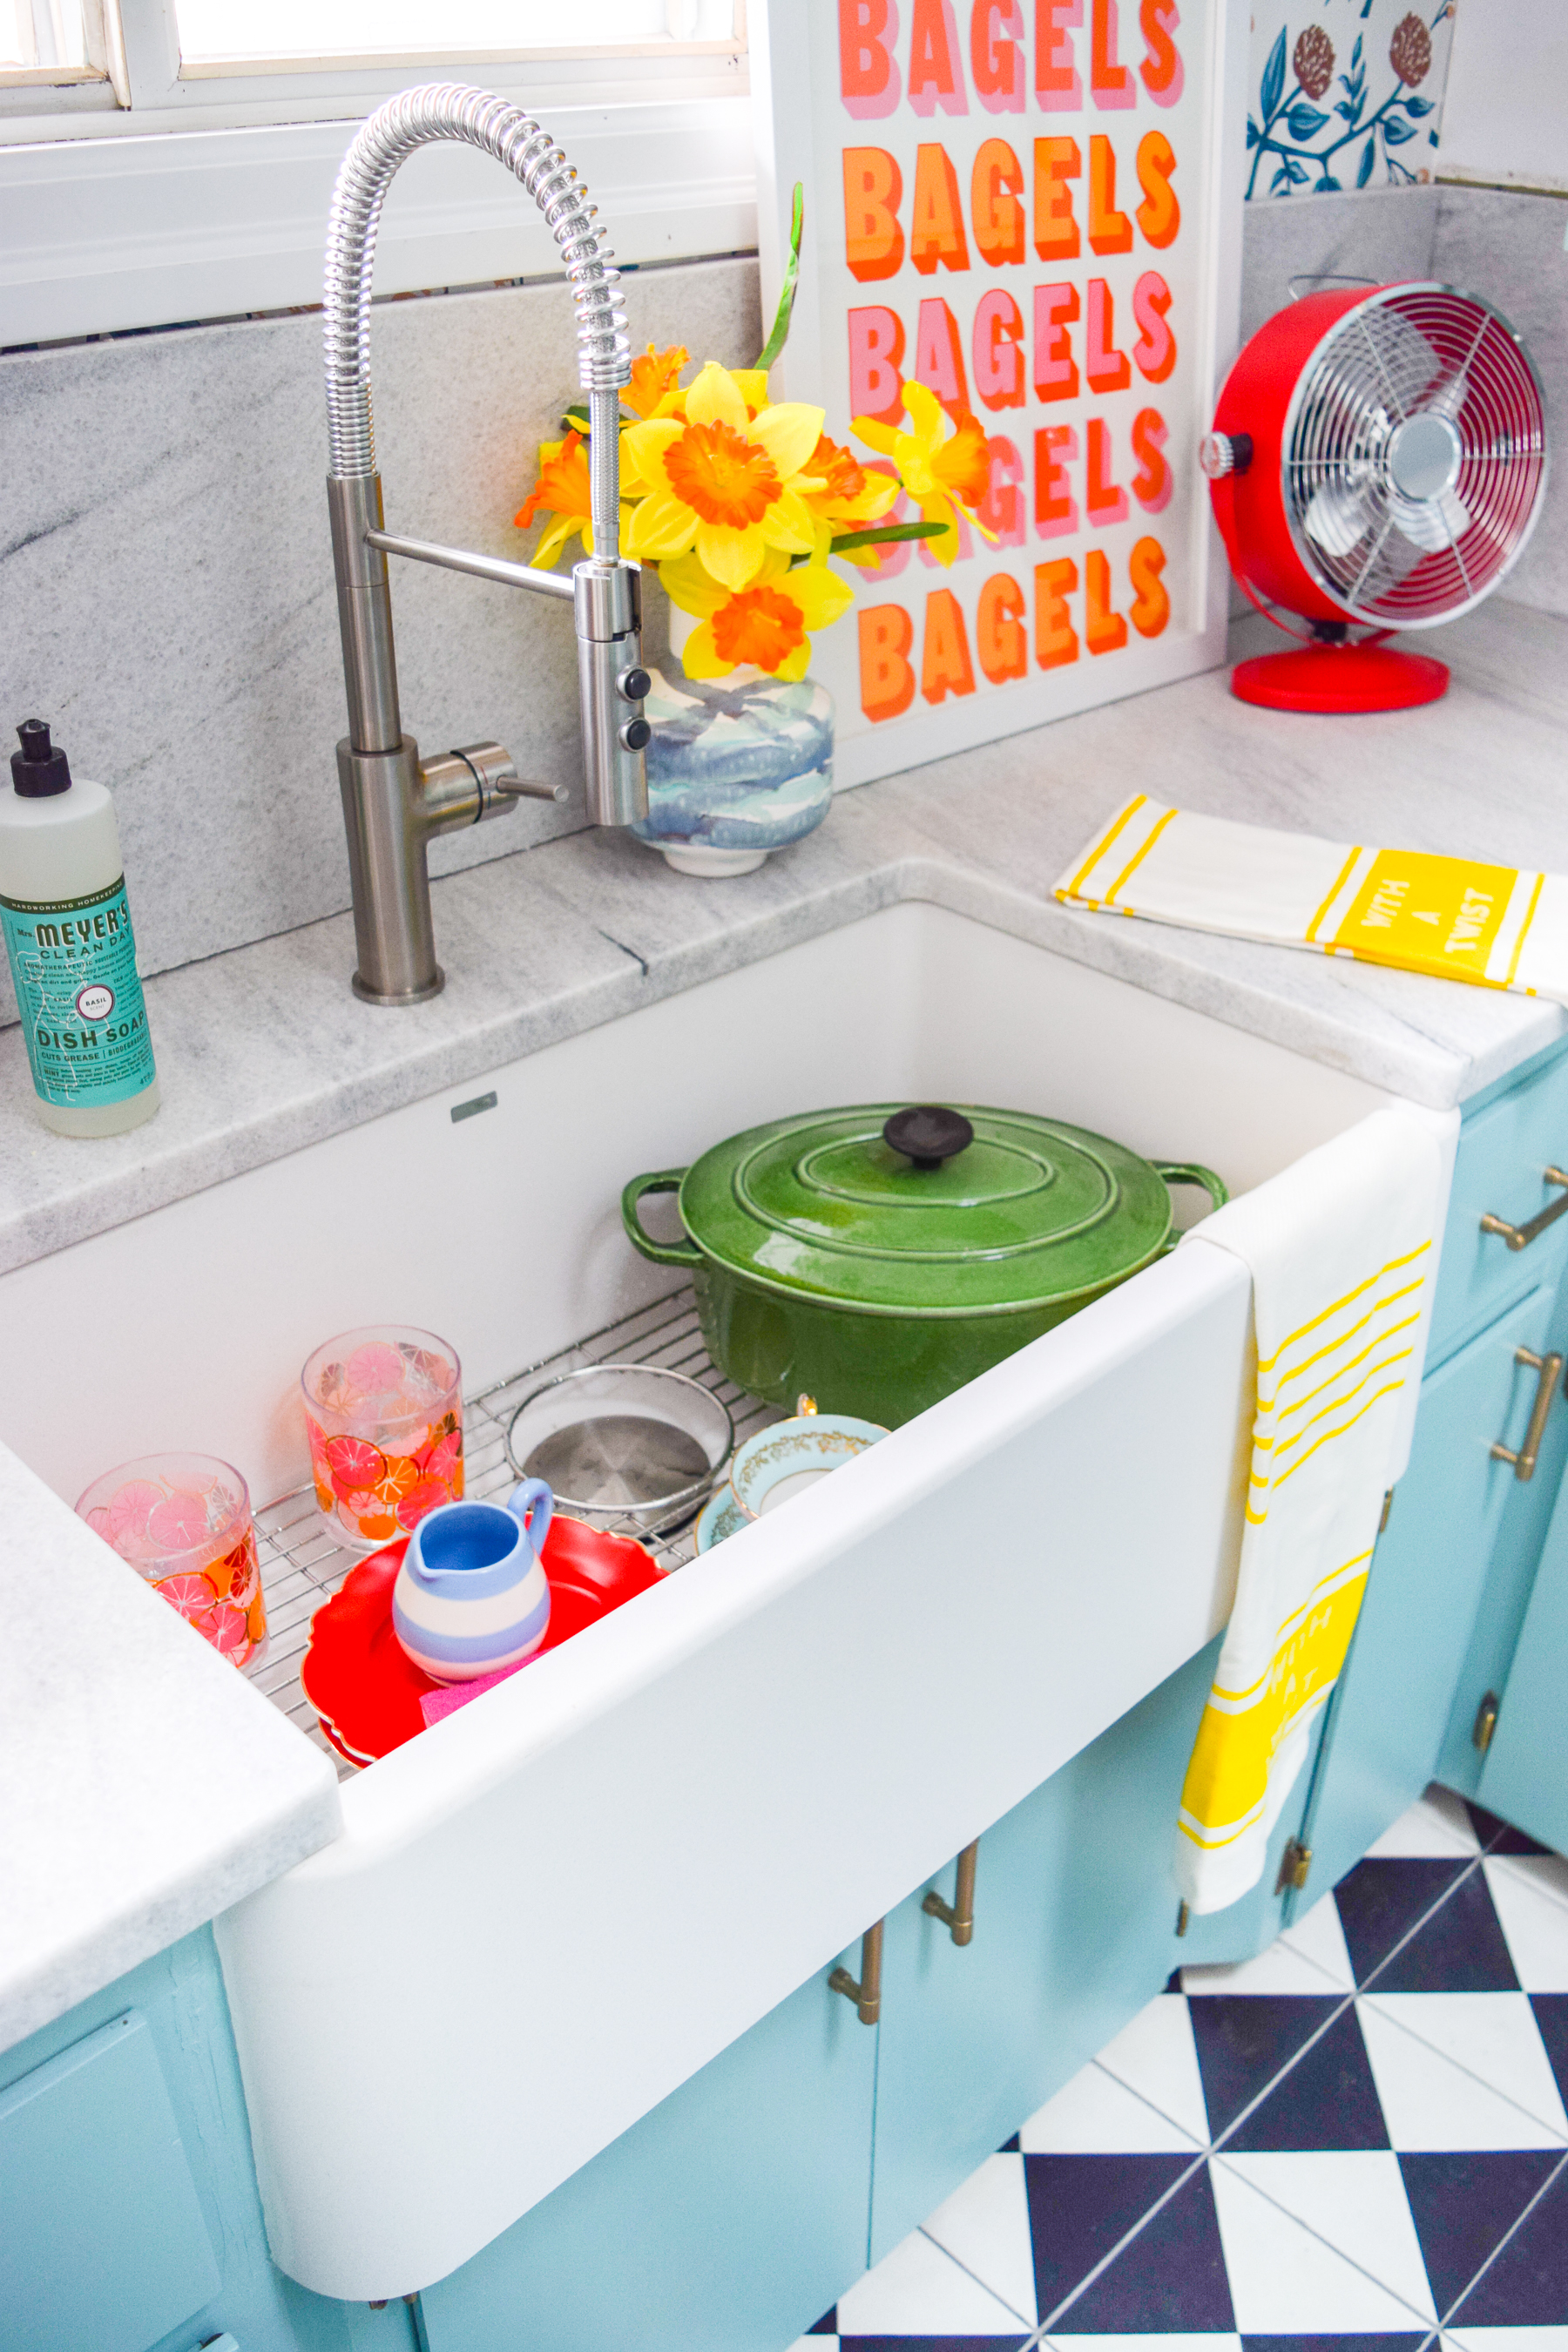 Choosing a retro kitchen sink for a modern retro kitchen is easier than you'd think, if you're looking in the right place! Come see where we got ours.